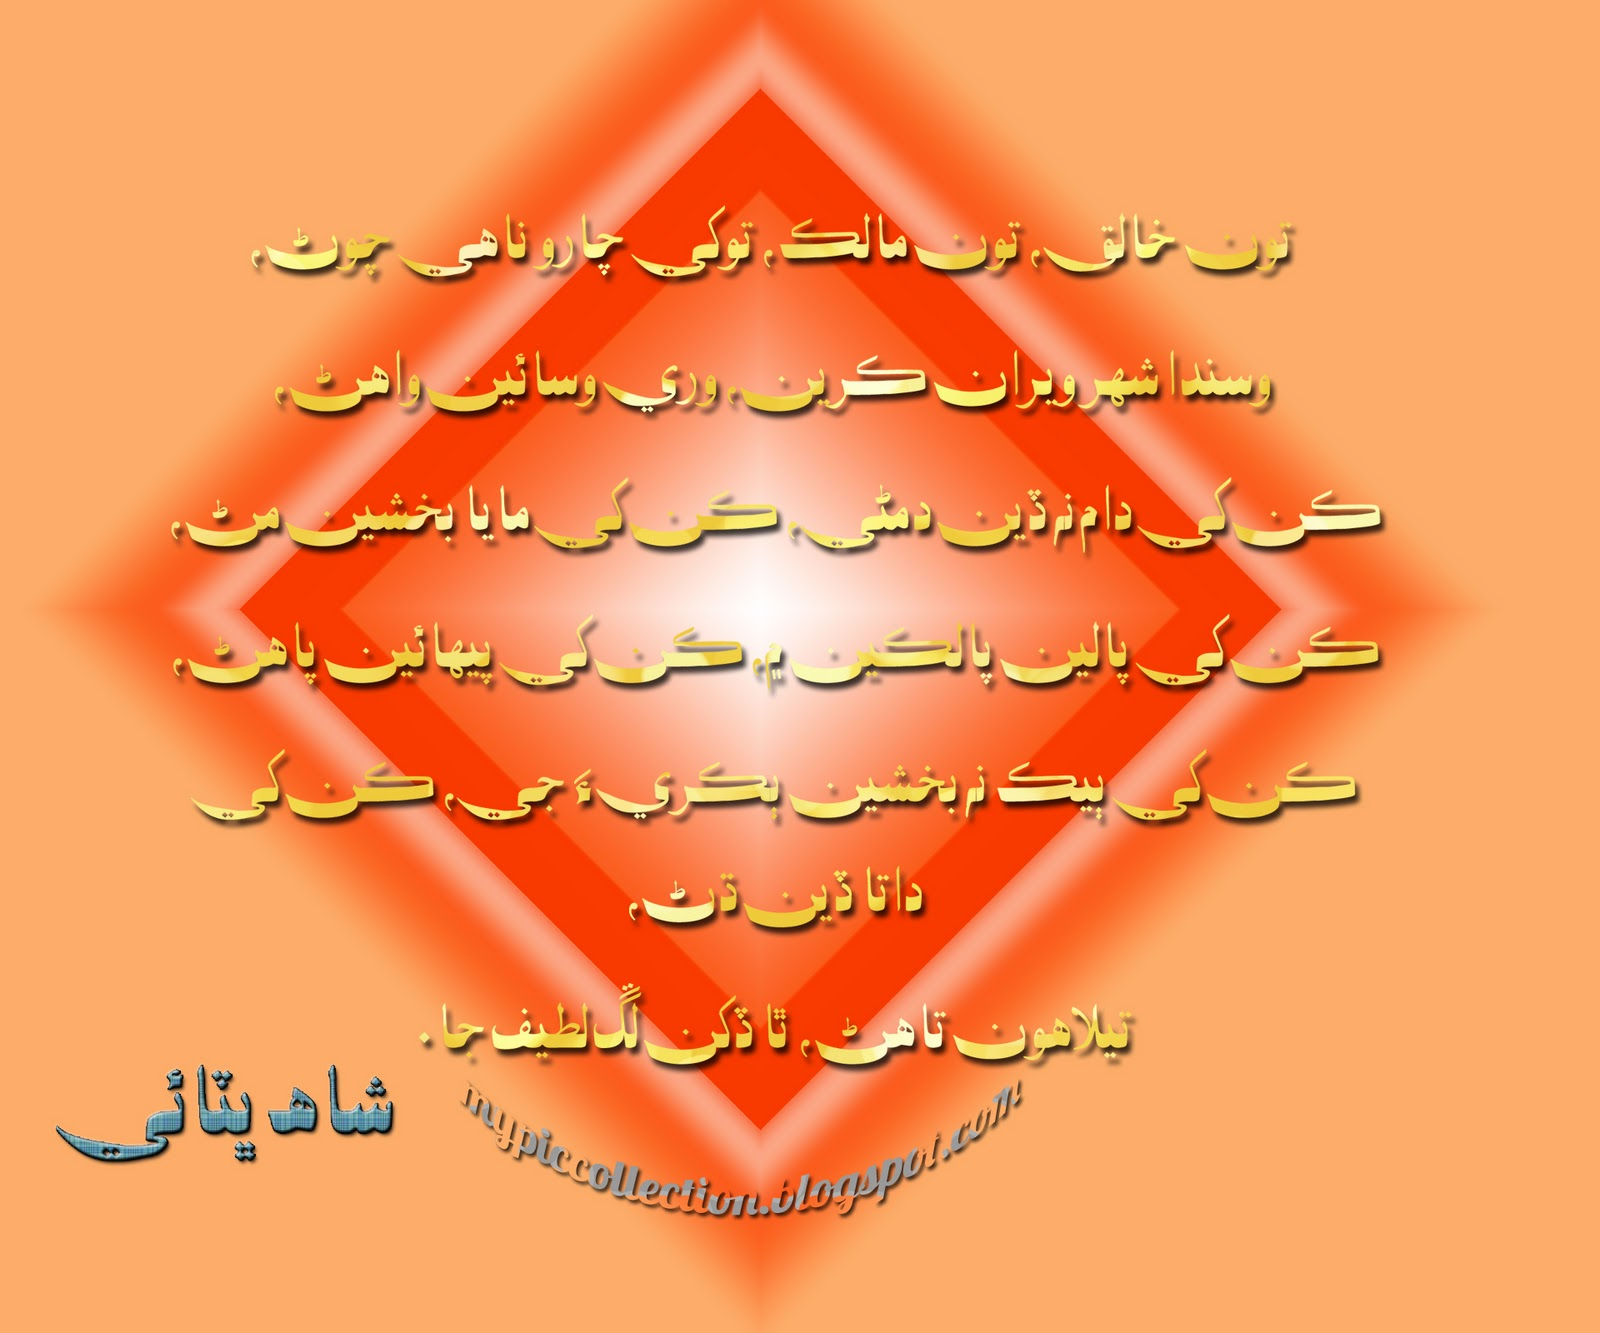 Shah Latif Poetry in Sindhi http://mypiccollection.blogspot.com/2011/01/poetry-of-shah-abdul-latif-bhitai-and.html